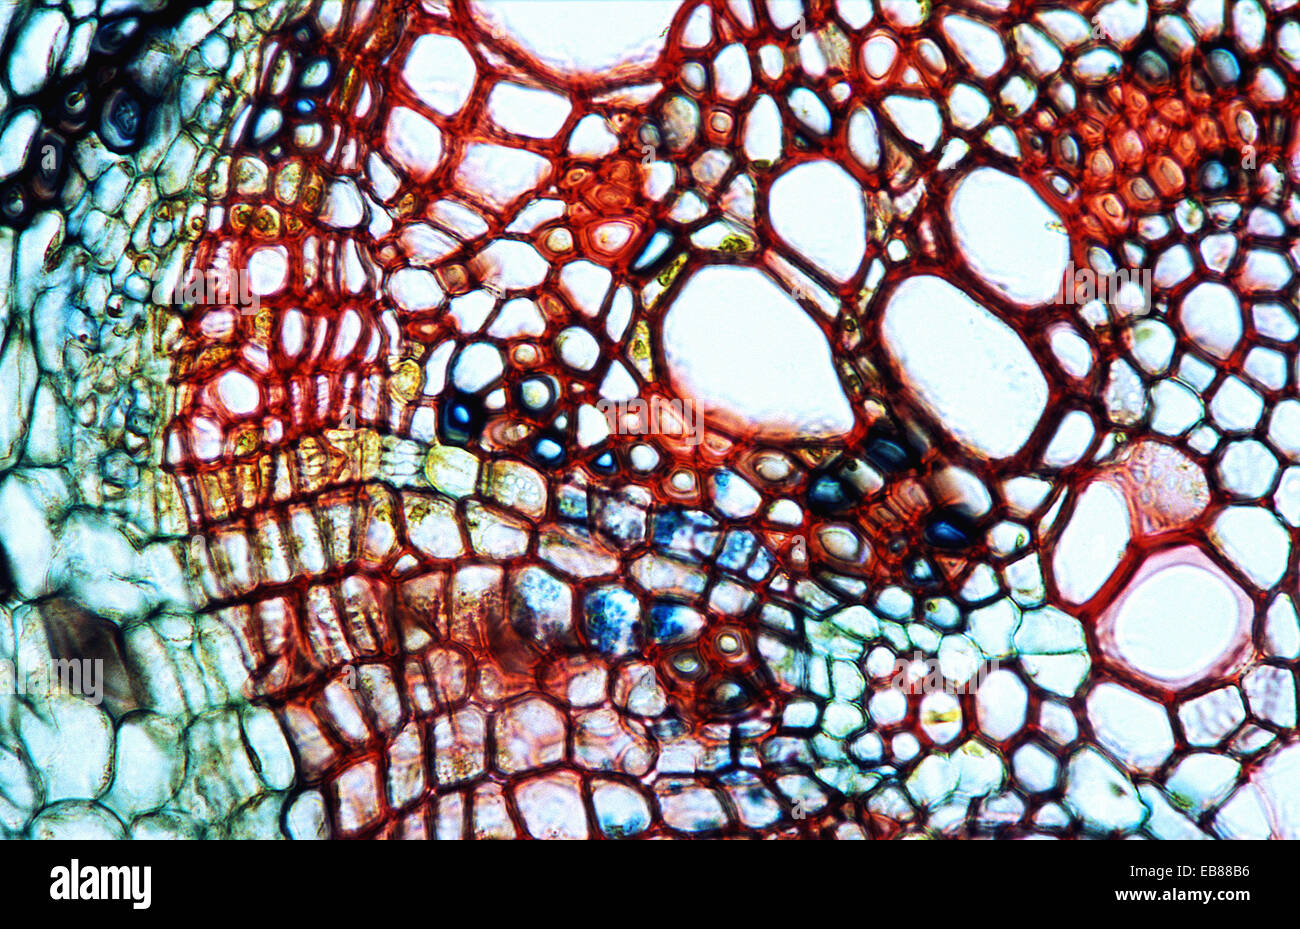 Dicotyledon Root Cross Section Xylem Phloem Pith Vascular Bundle Stock Photo Royalty Free